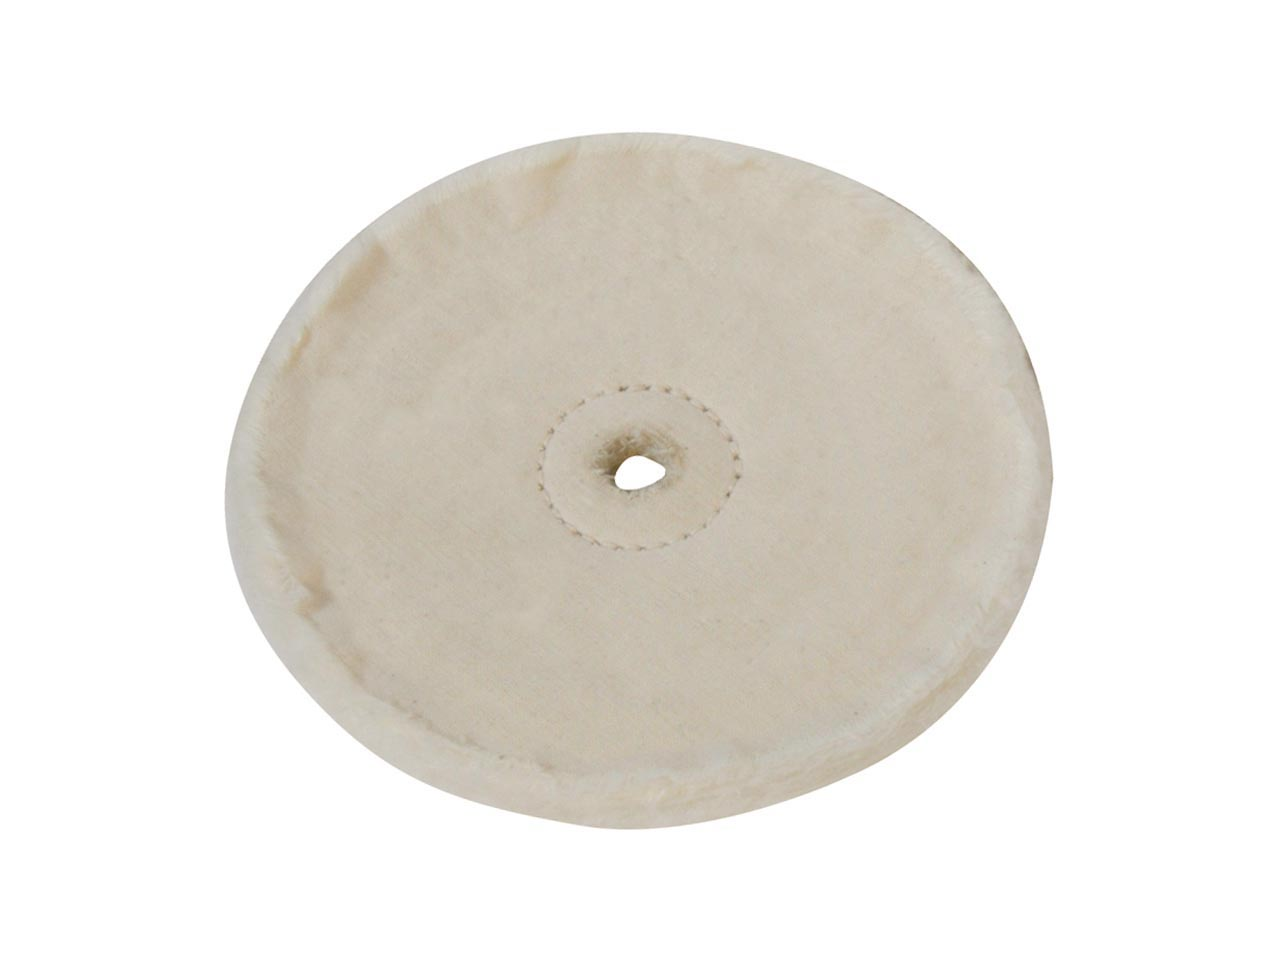 Silverline 633782 Double-Stitched Buffing Wheel 150mm